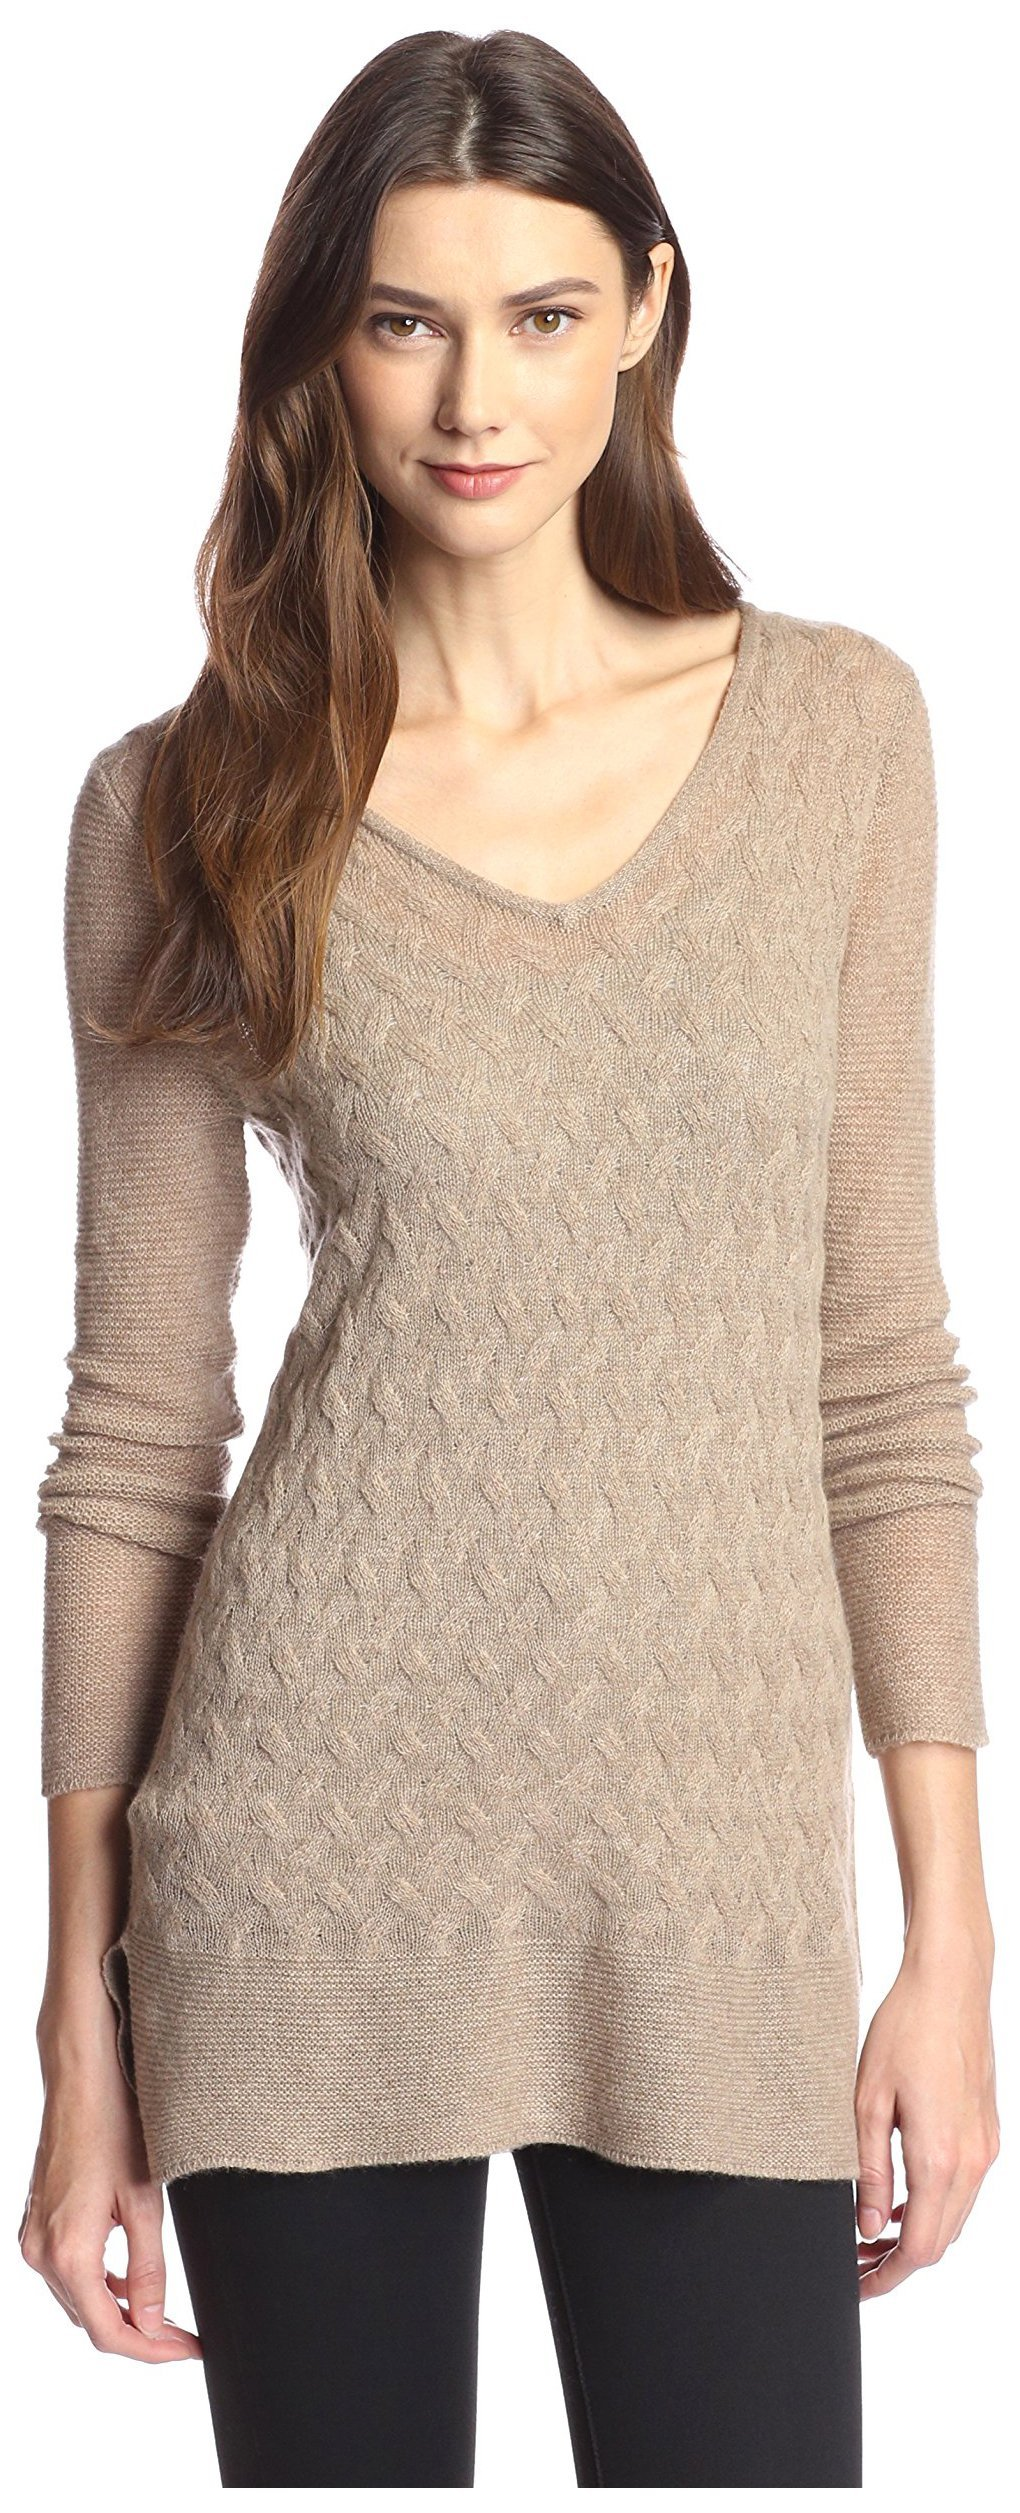 James & Erin Women's Link Pattern Cashmere Sweater, Dark Natural, L